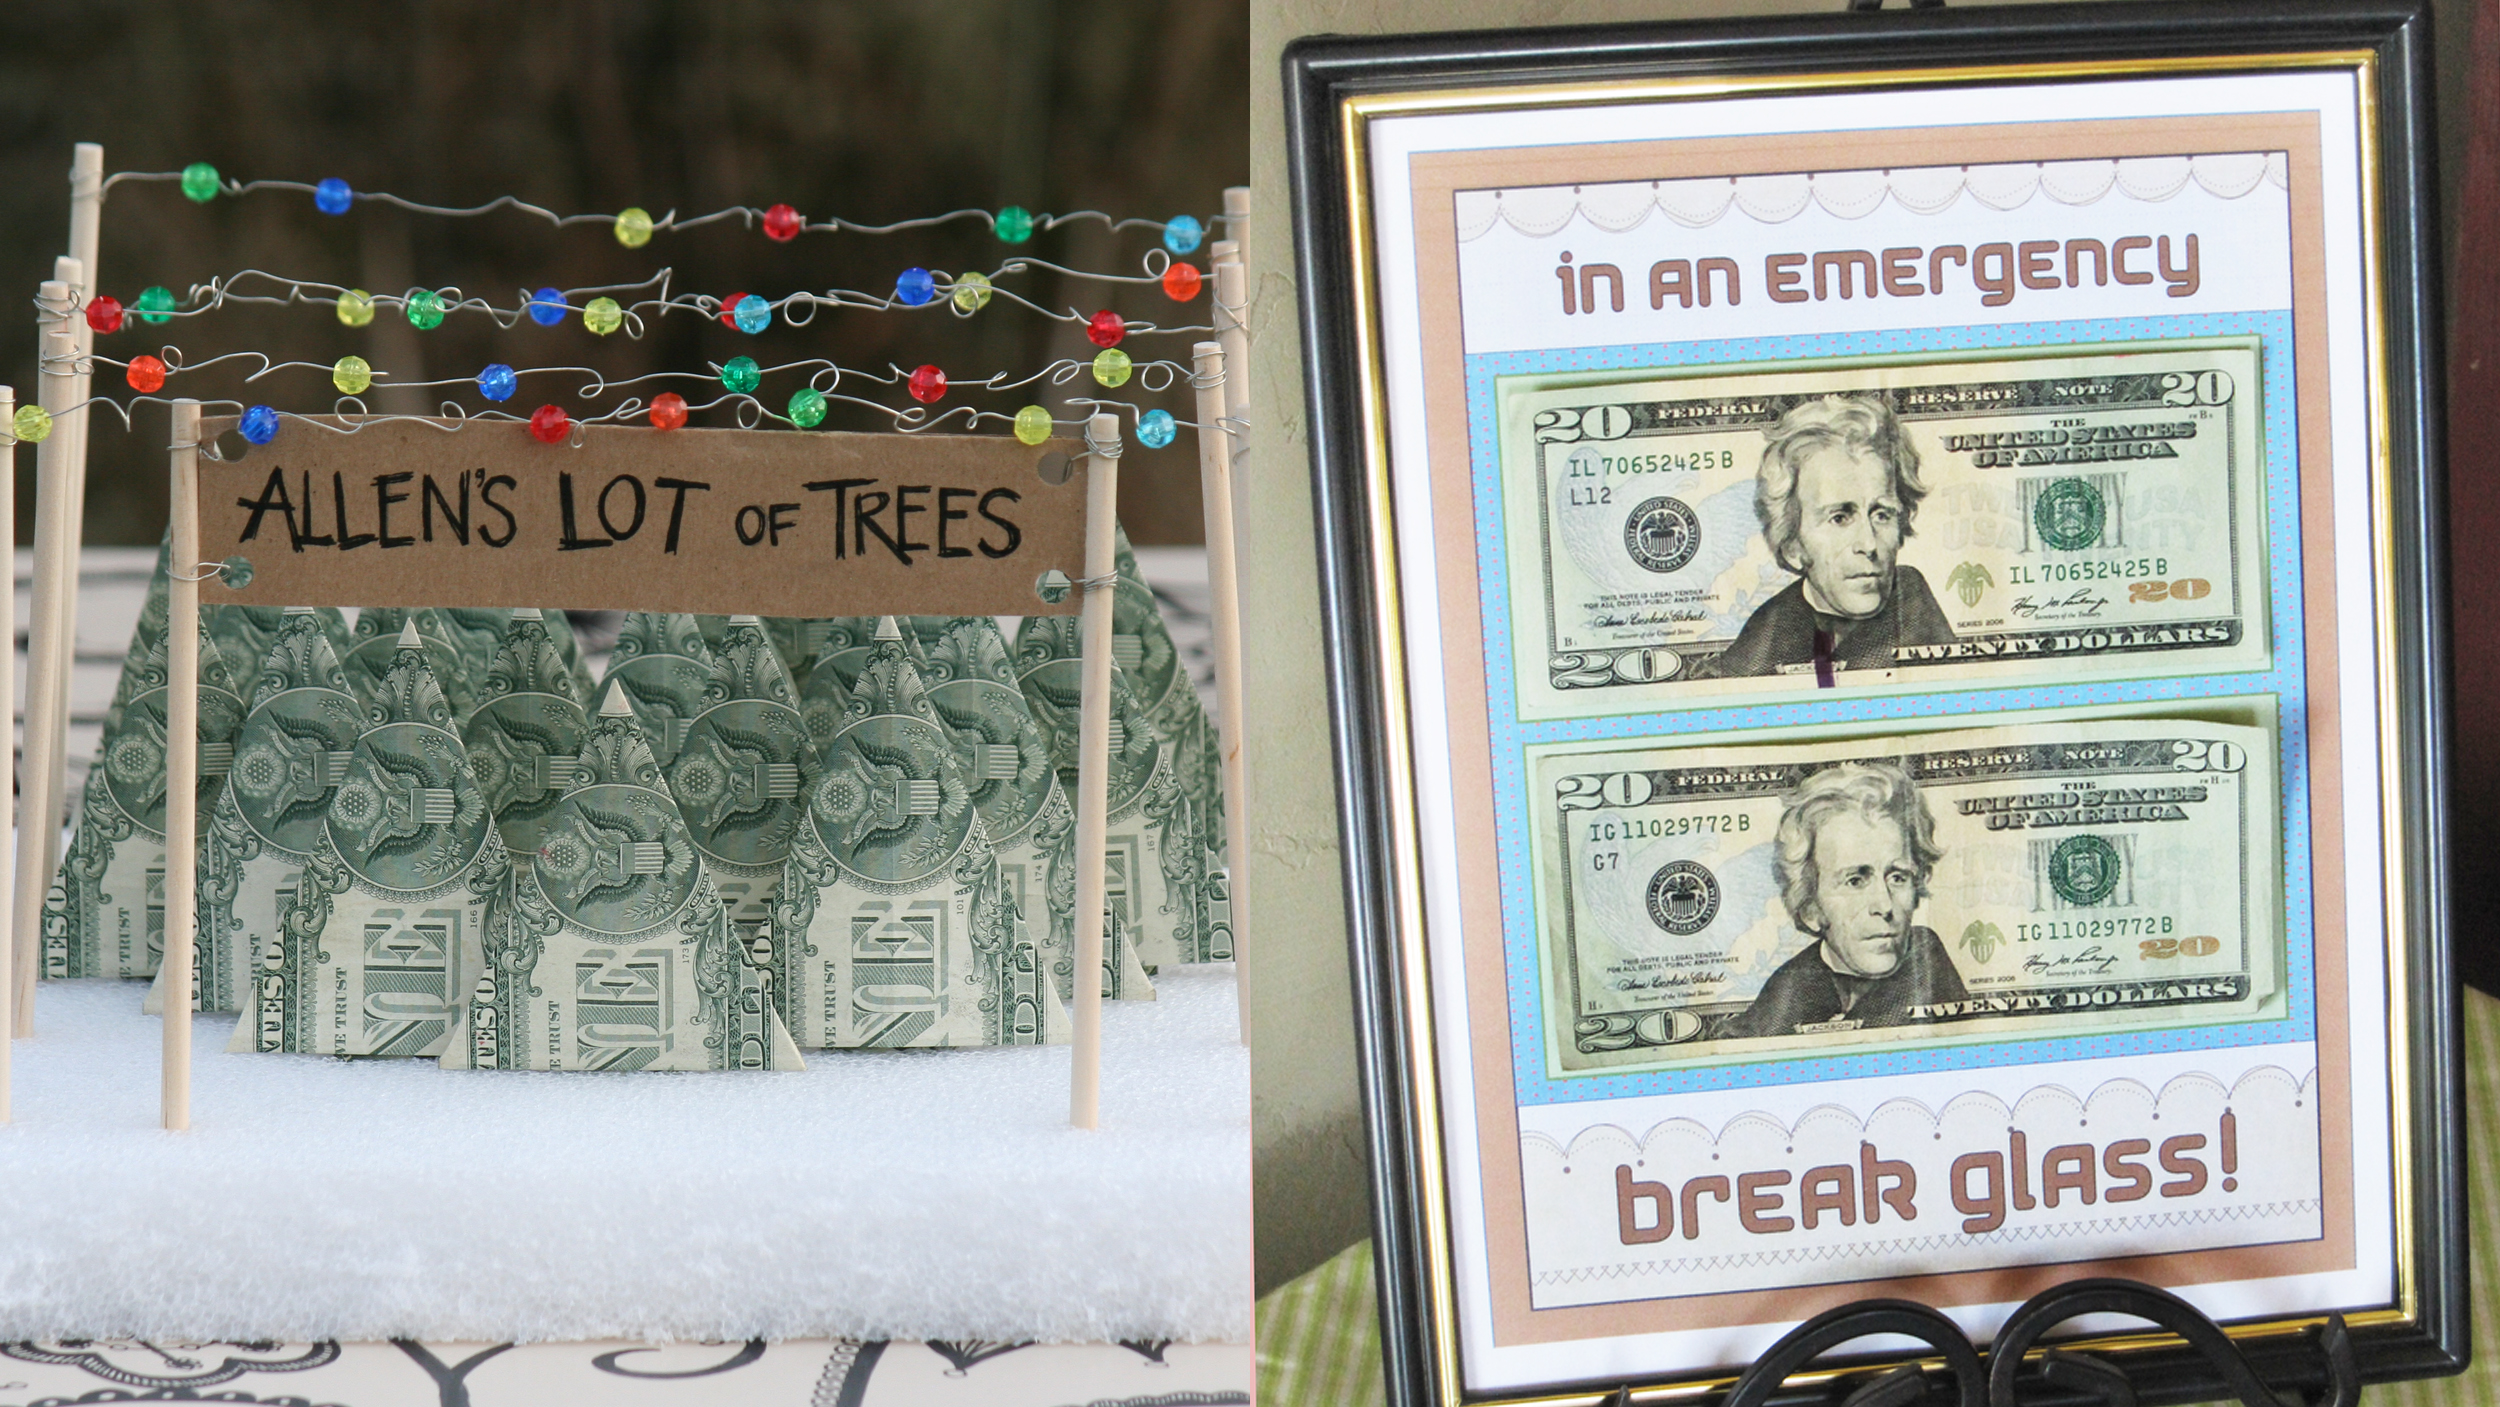 creative cash gift tutorials from pinterest will add sparkle to your present